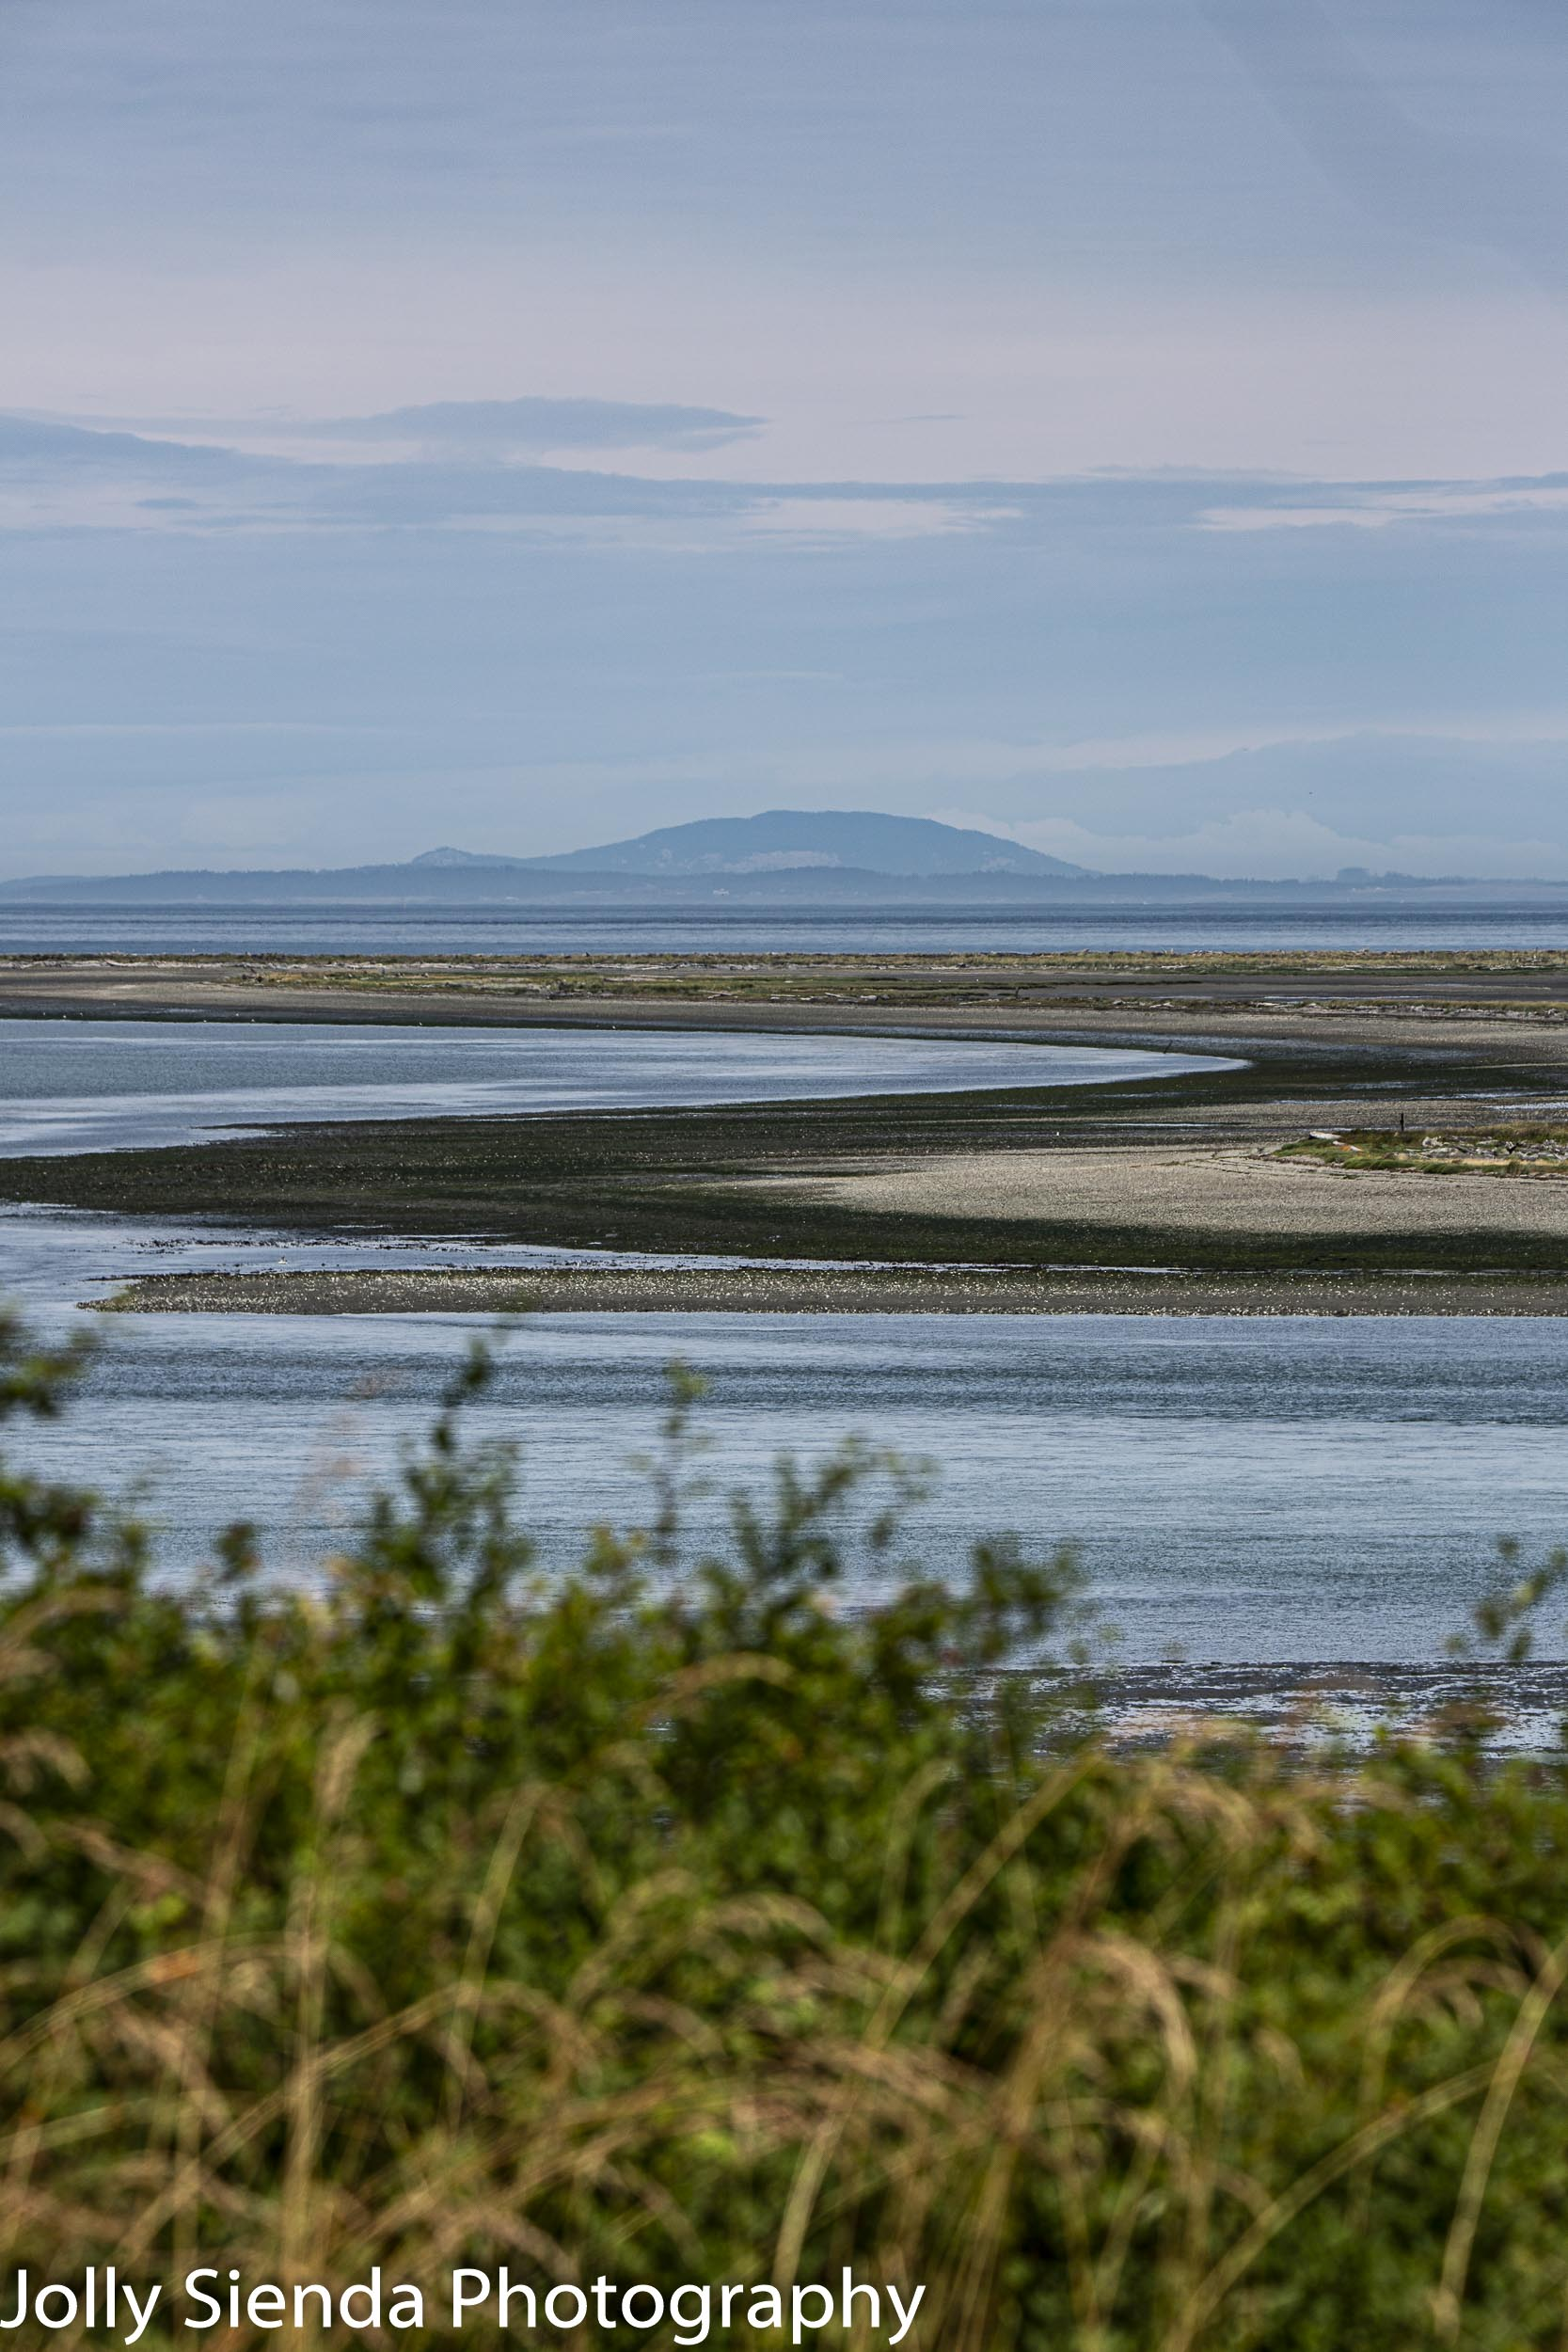 Curve of the Dungeness Spit at low tide